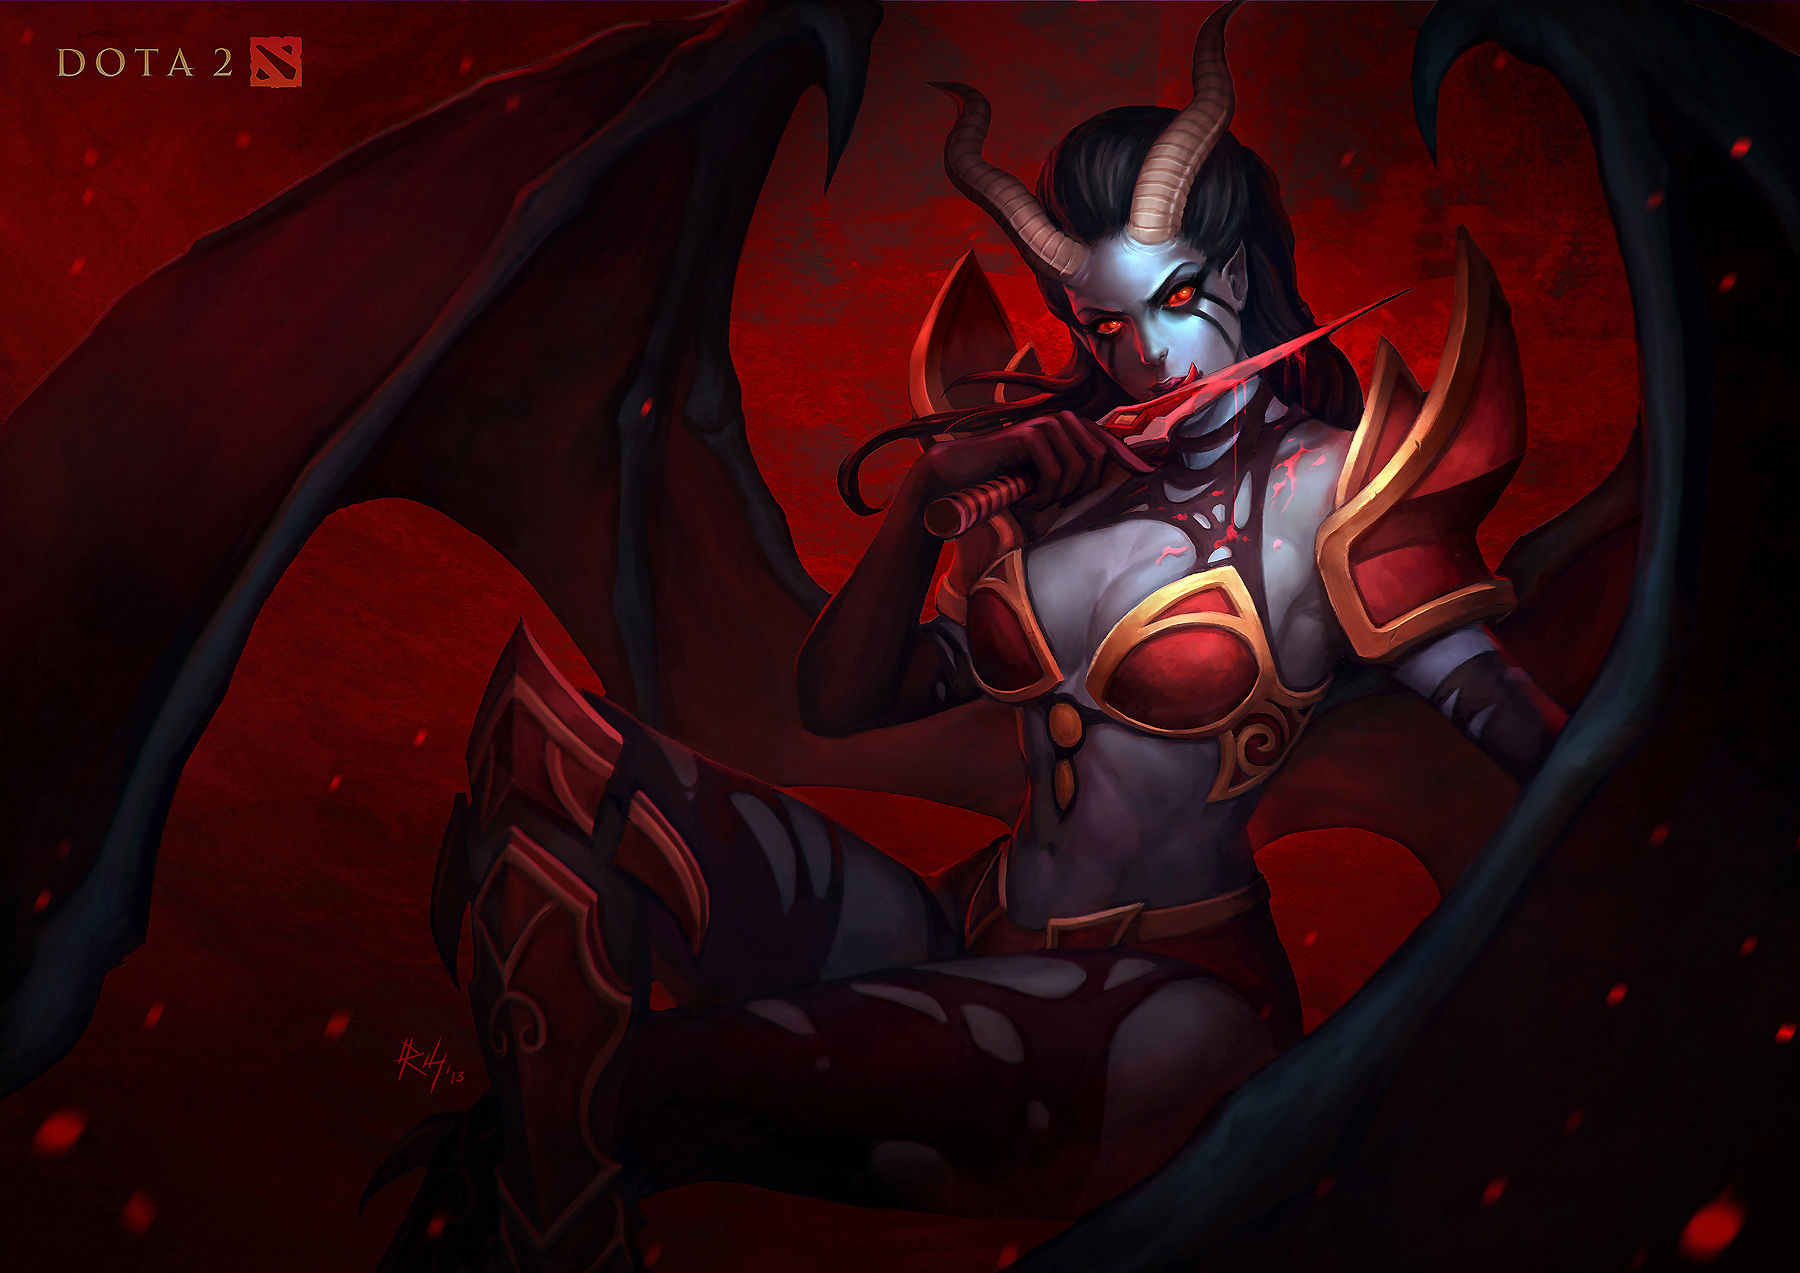 Queen Of Pain Wallpaper Dota 2 HD Wallpapers 1800x1273